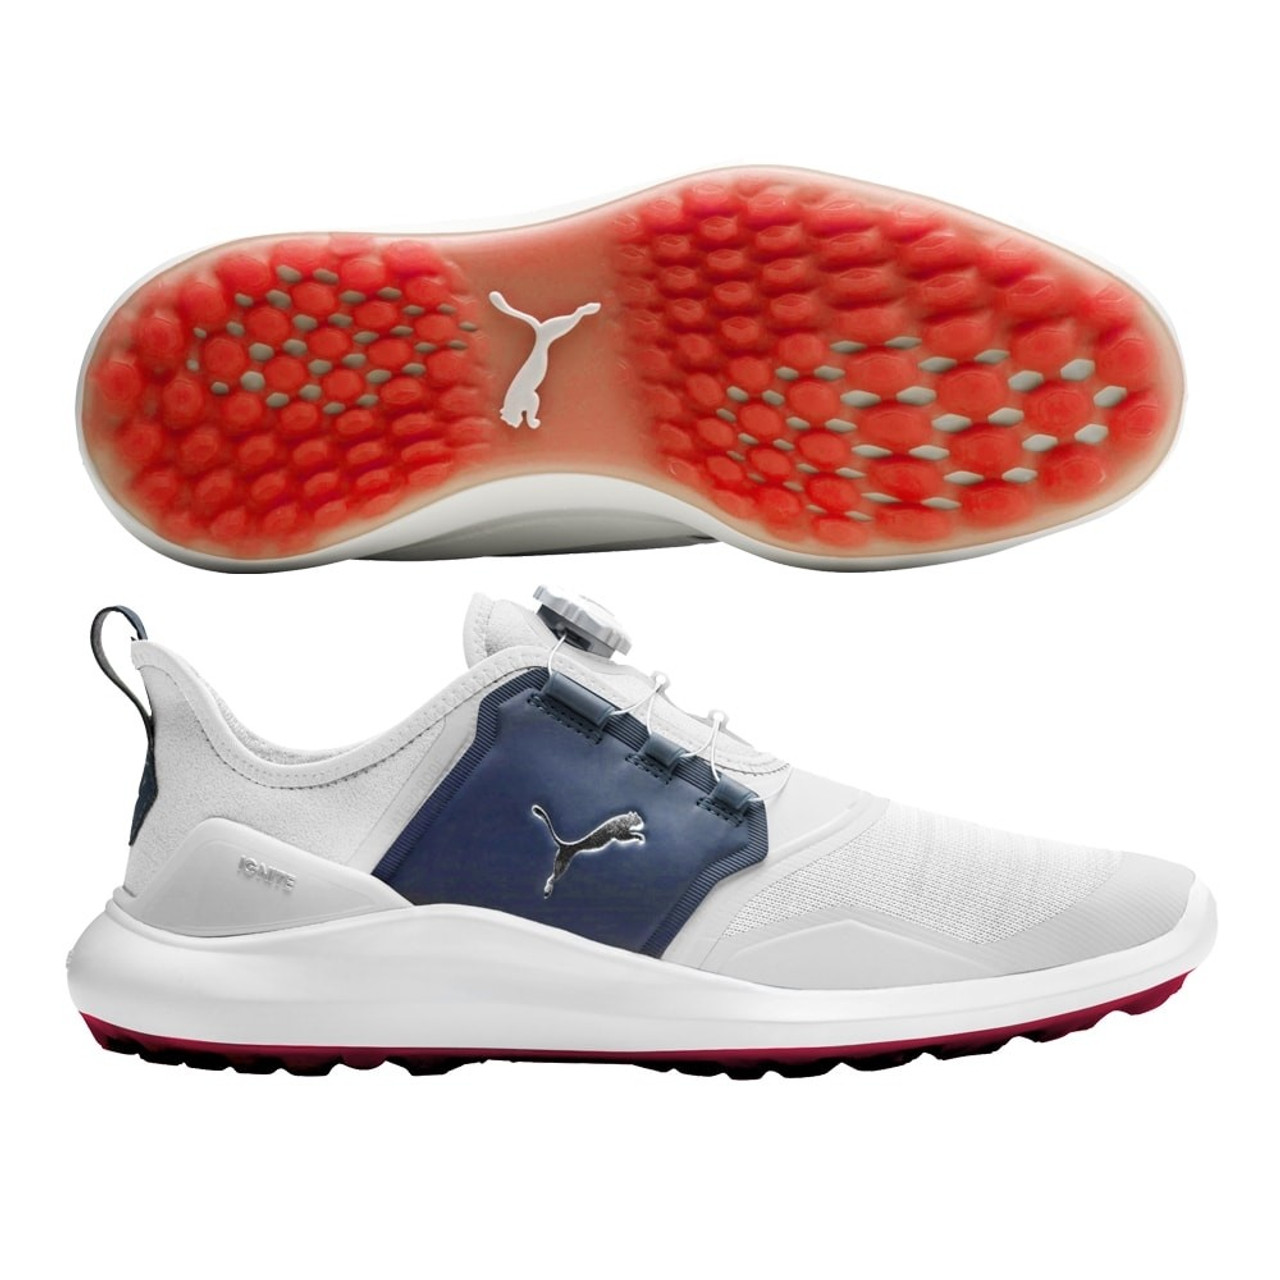 puma ignite golf